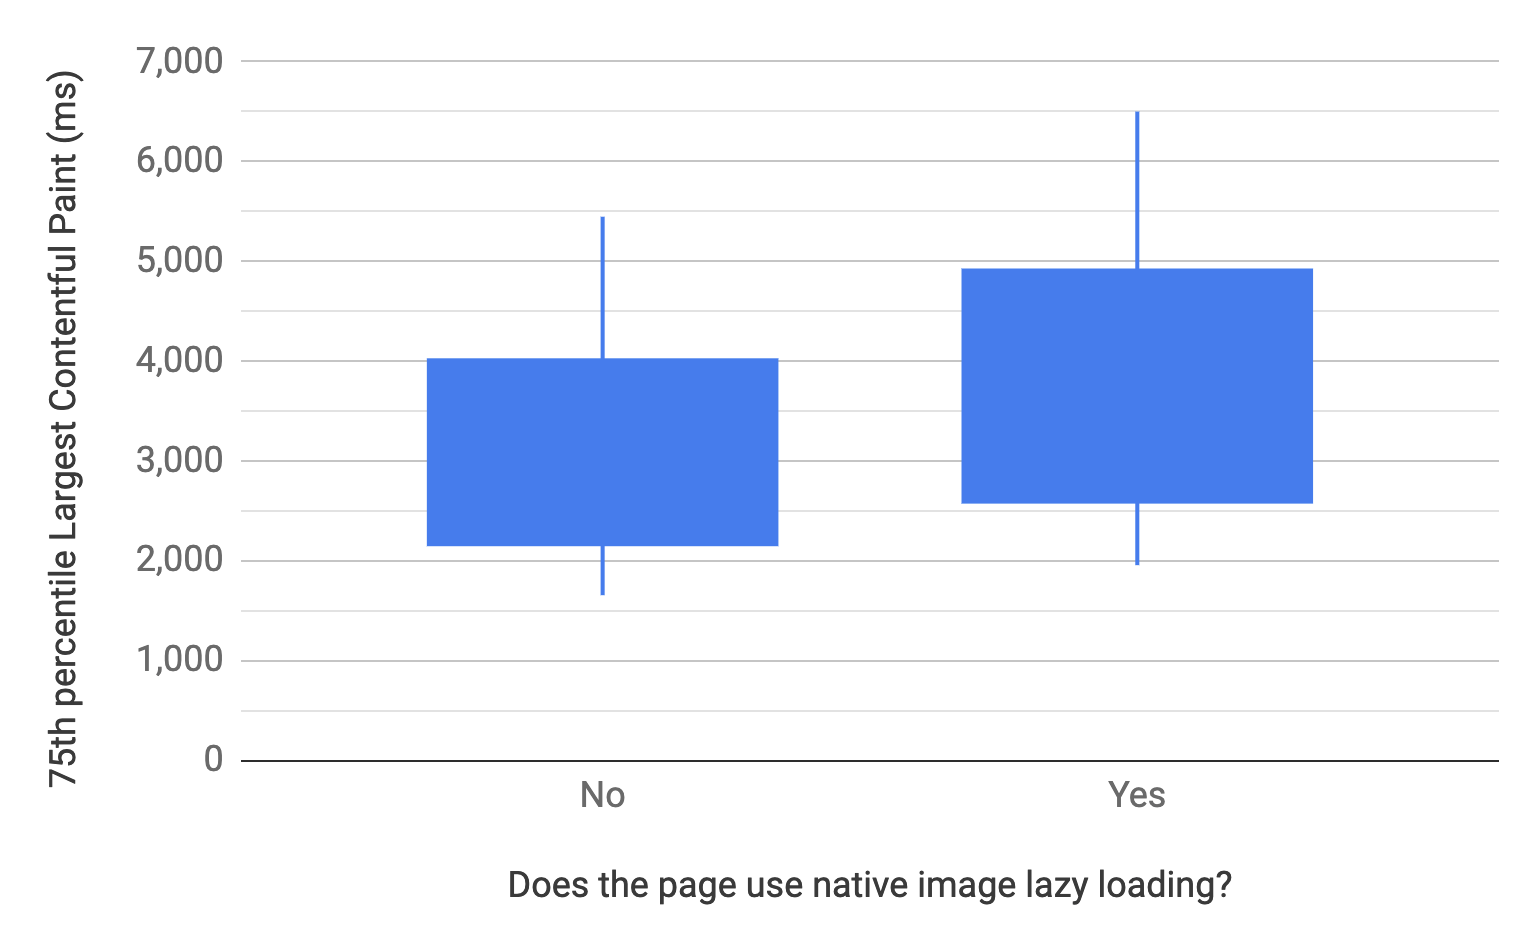 Box and whisker chart showing the 10, 25, 75, and 90th percentiles for pages that do and do not use native image lazy-loading. Comparatively, the LCP distribution of pages that do not use it is faster than those that do.